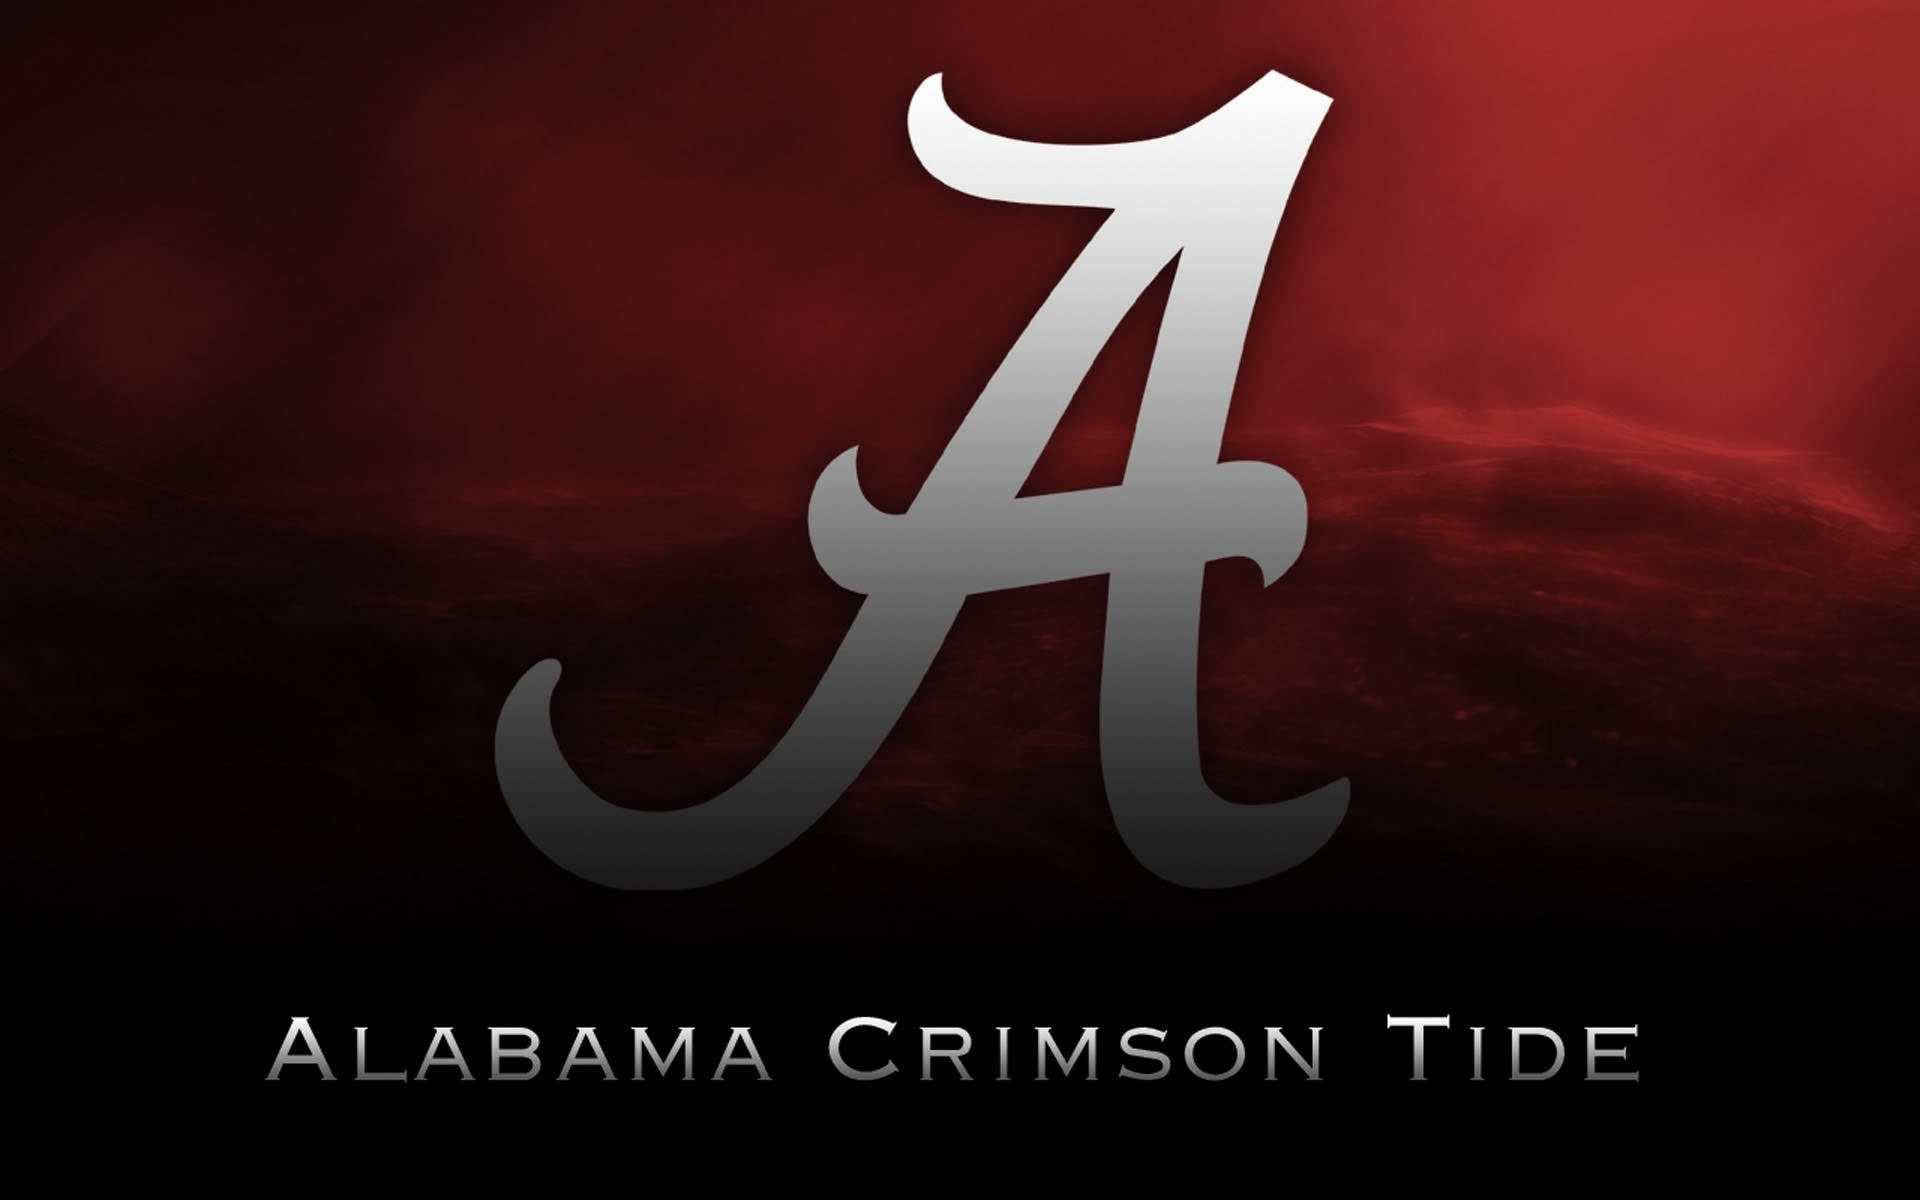 Res: 1920x1200, Title : free alabama crimson tide wallpapers – page 3 of 3 – wallpaper.wiki.  Dimension : 1920 x 1200. File Type : JPG/JPEG